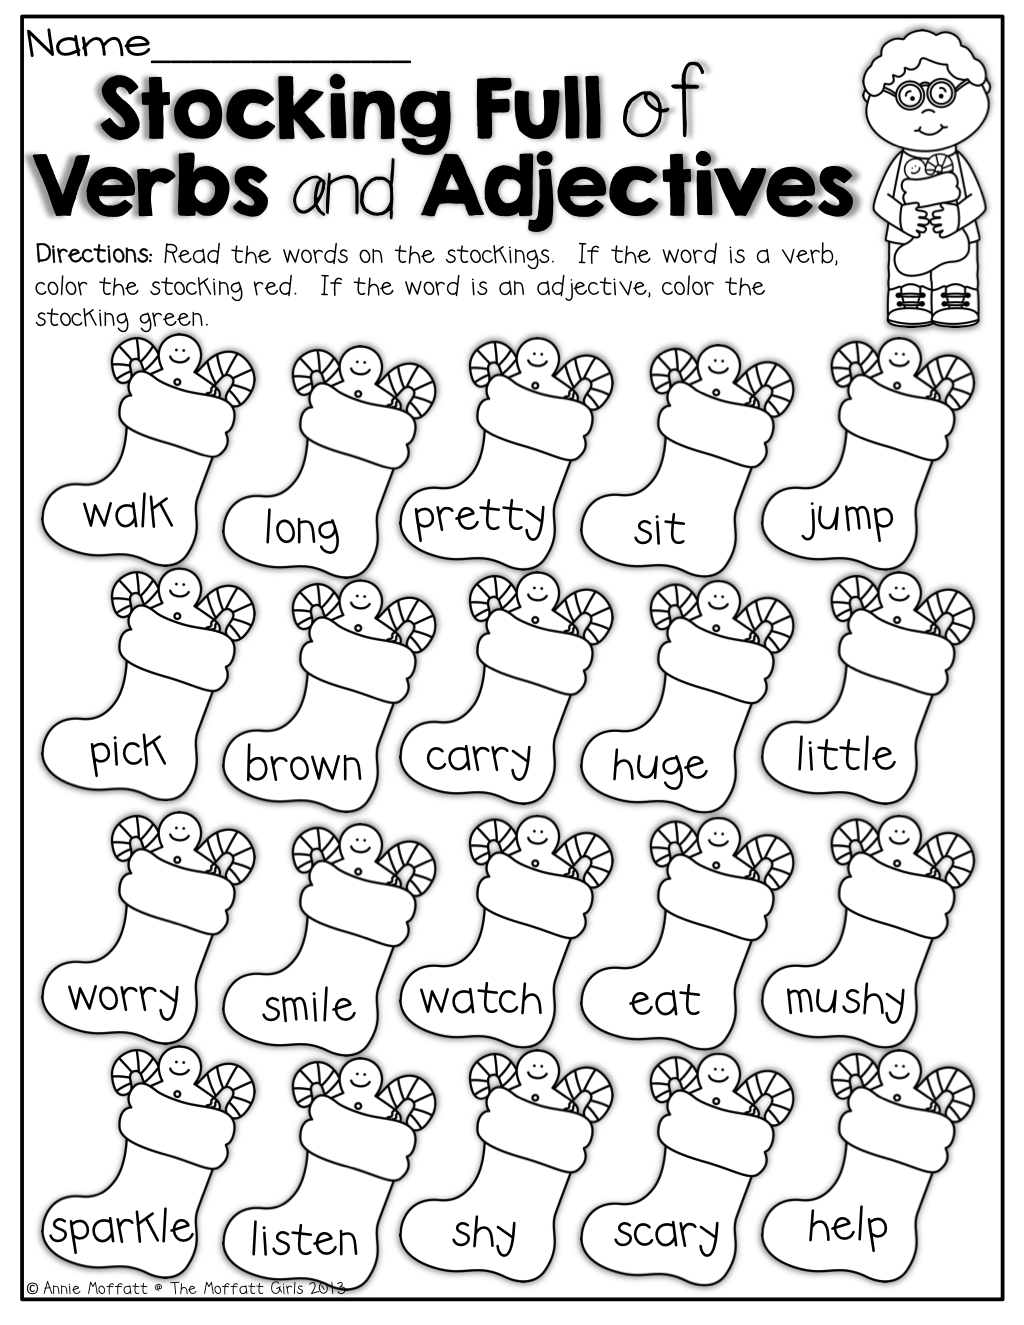 Adjectives Verbs Color Code And The Byverbs And